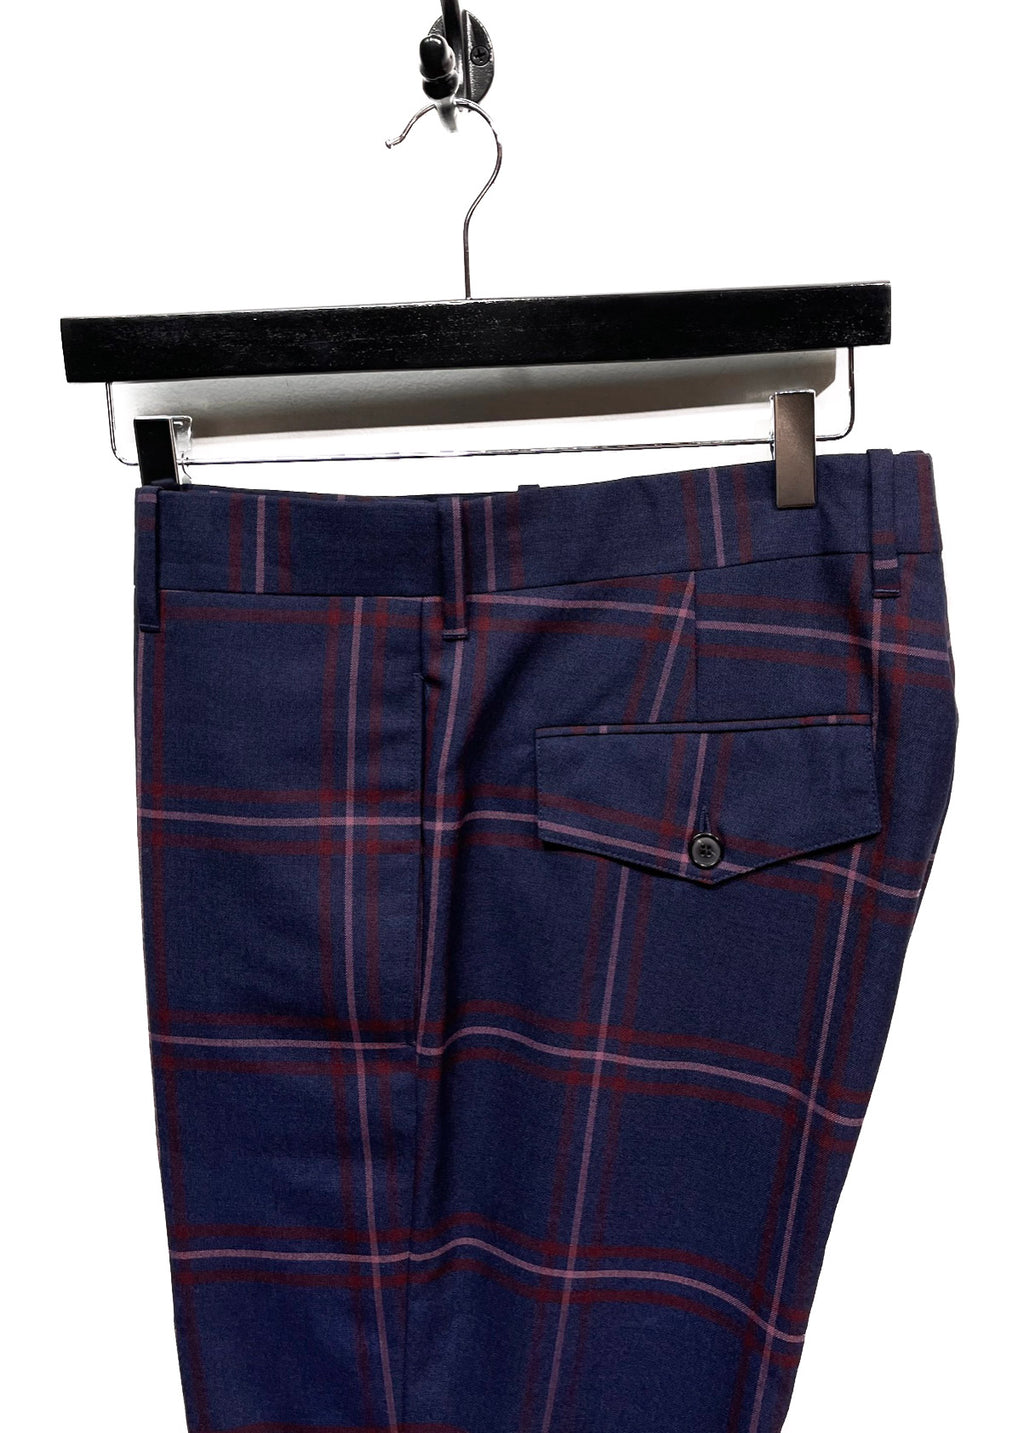 Paul Smith Navy Checkered Cuffed Trousers